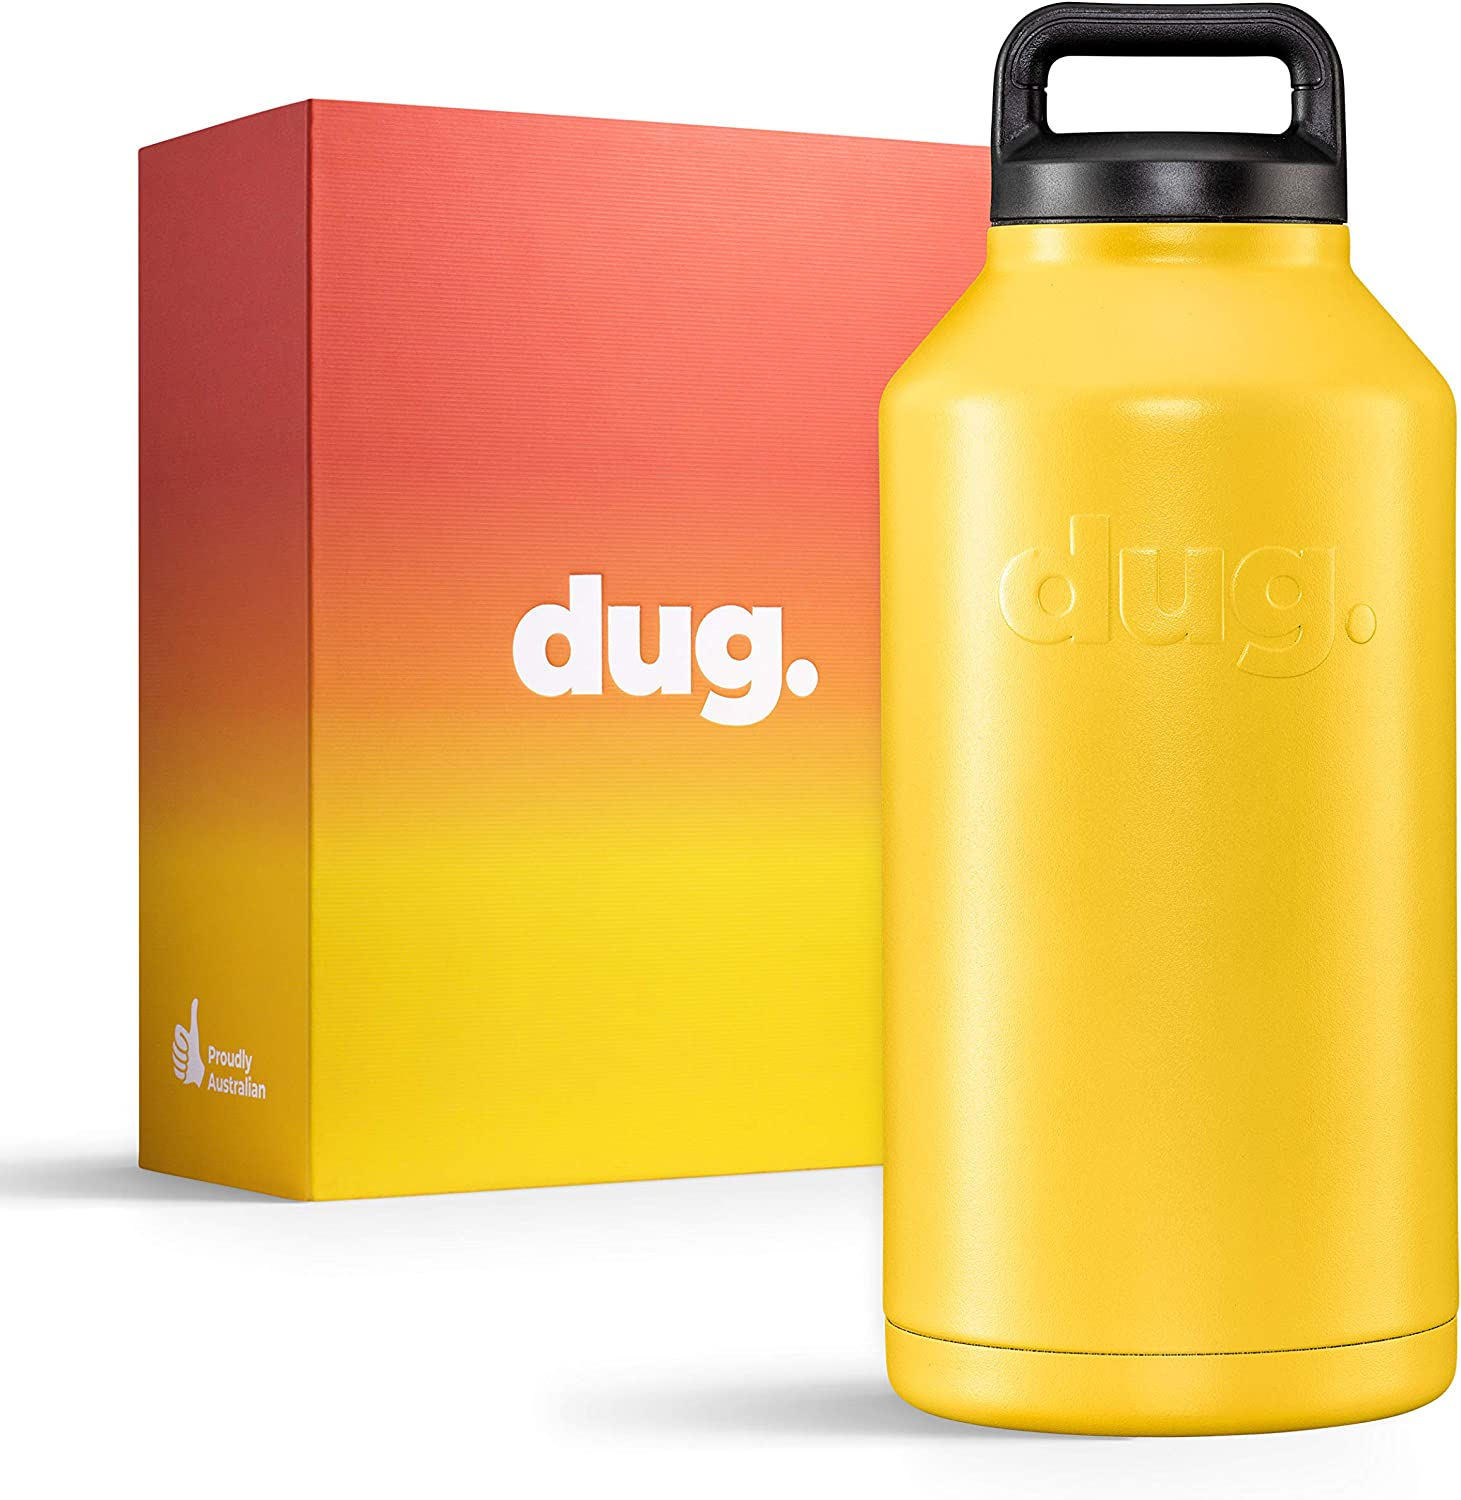 My Mate Dug - Stainless Steel Vacuum Insulated Growler 64oz Keeps Beer and Water Cold - Ready To Drink Anytime, Anywhere